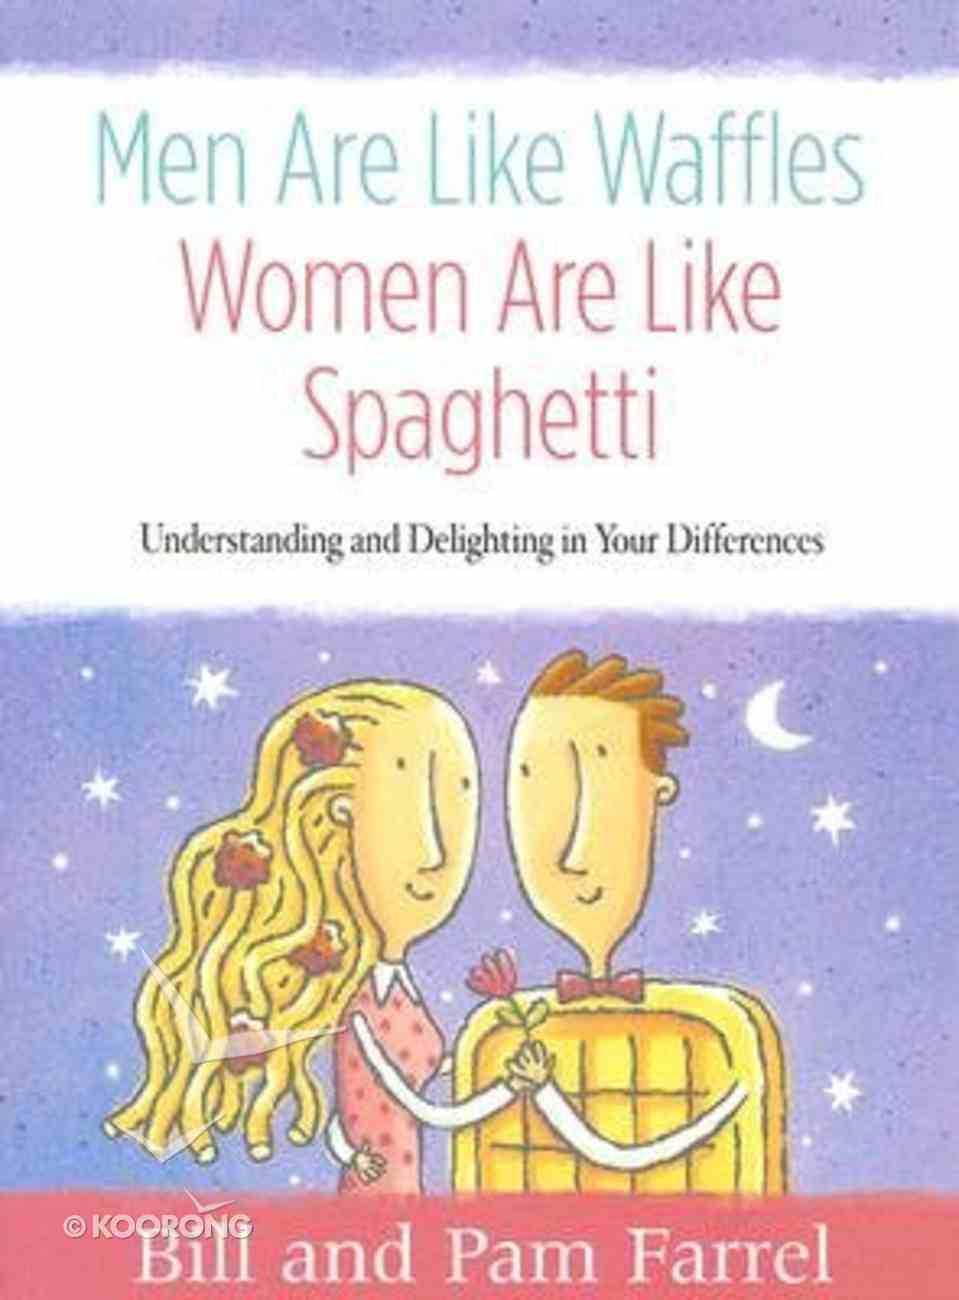 Men Are Like Waffles, Women Are Like Spaghetti (Member Book, 7 Sessions) Paperback